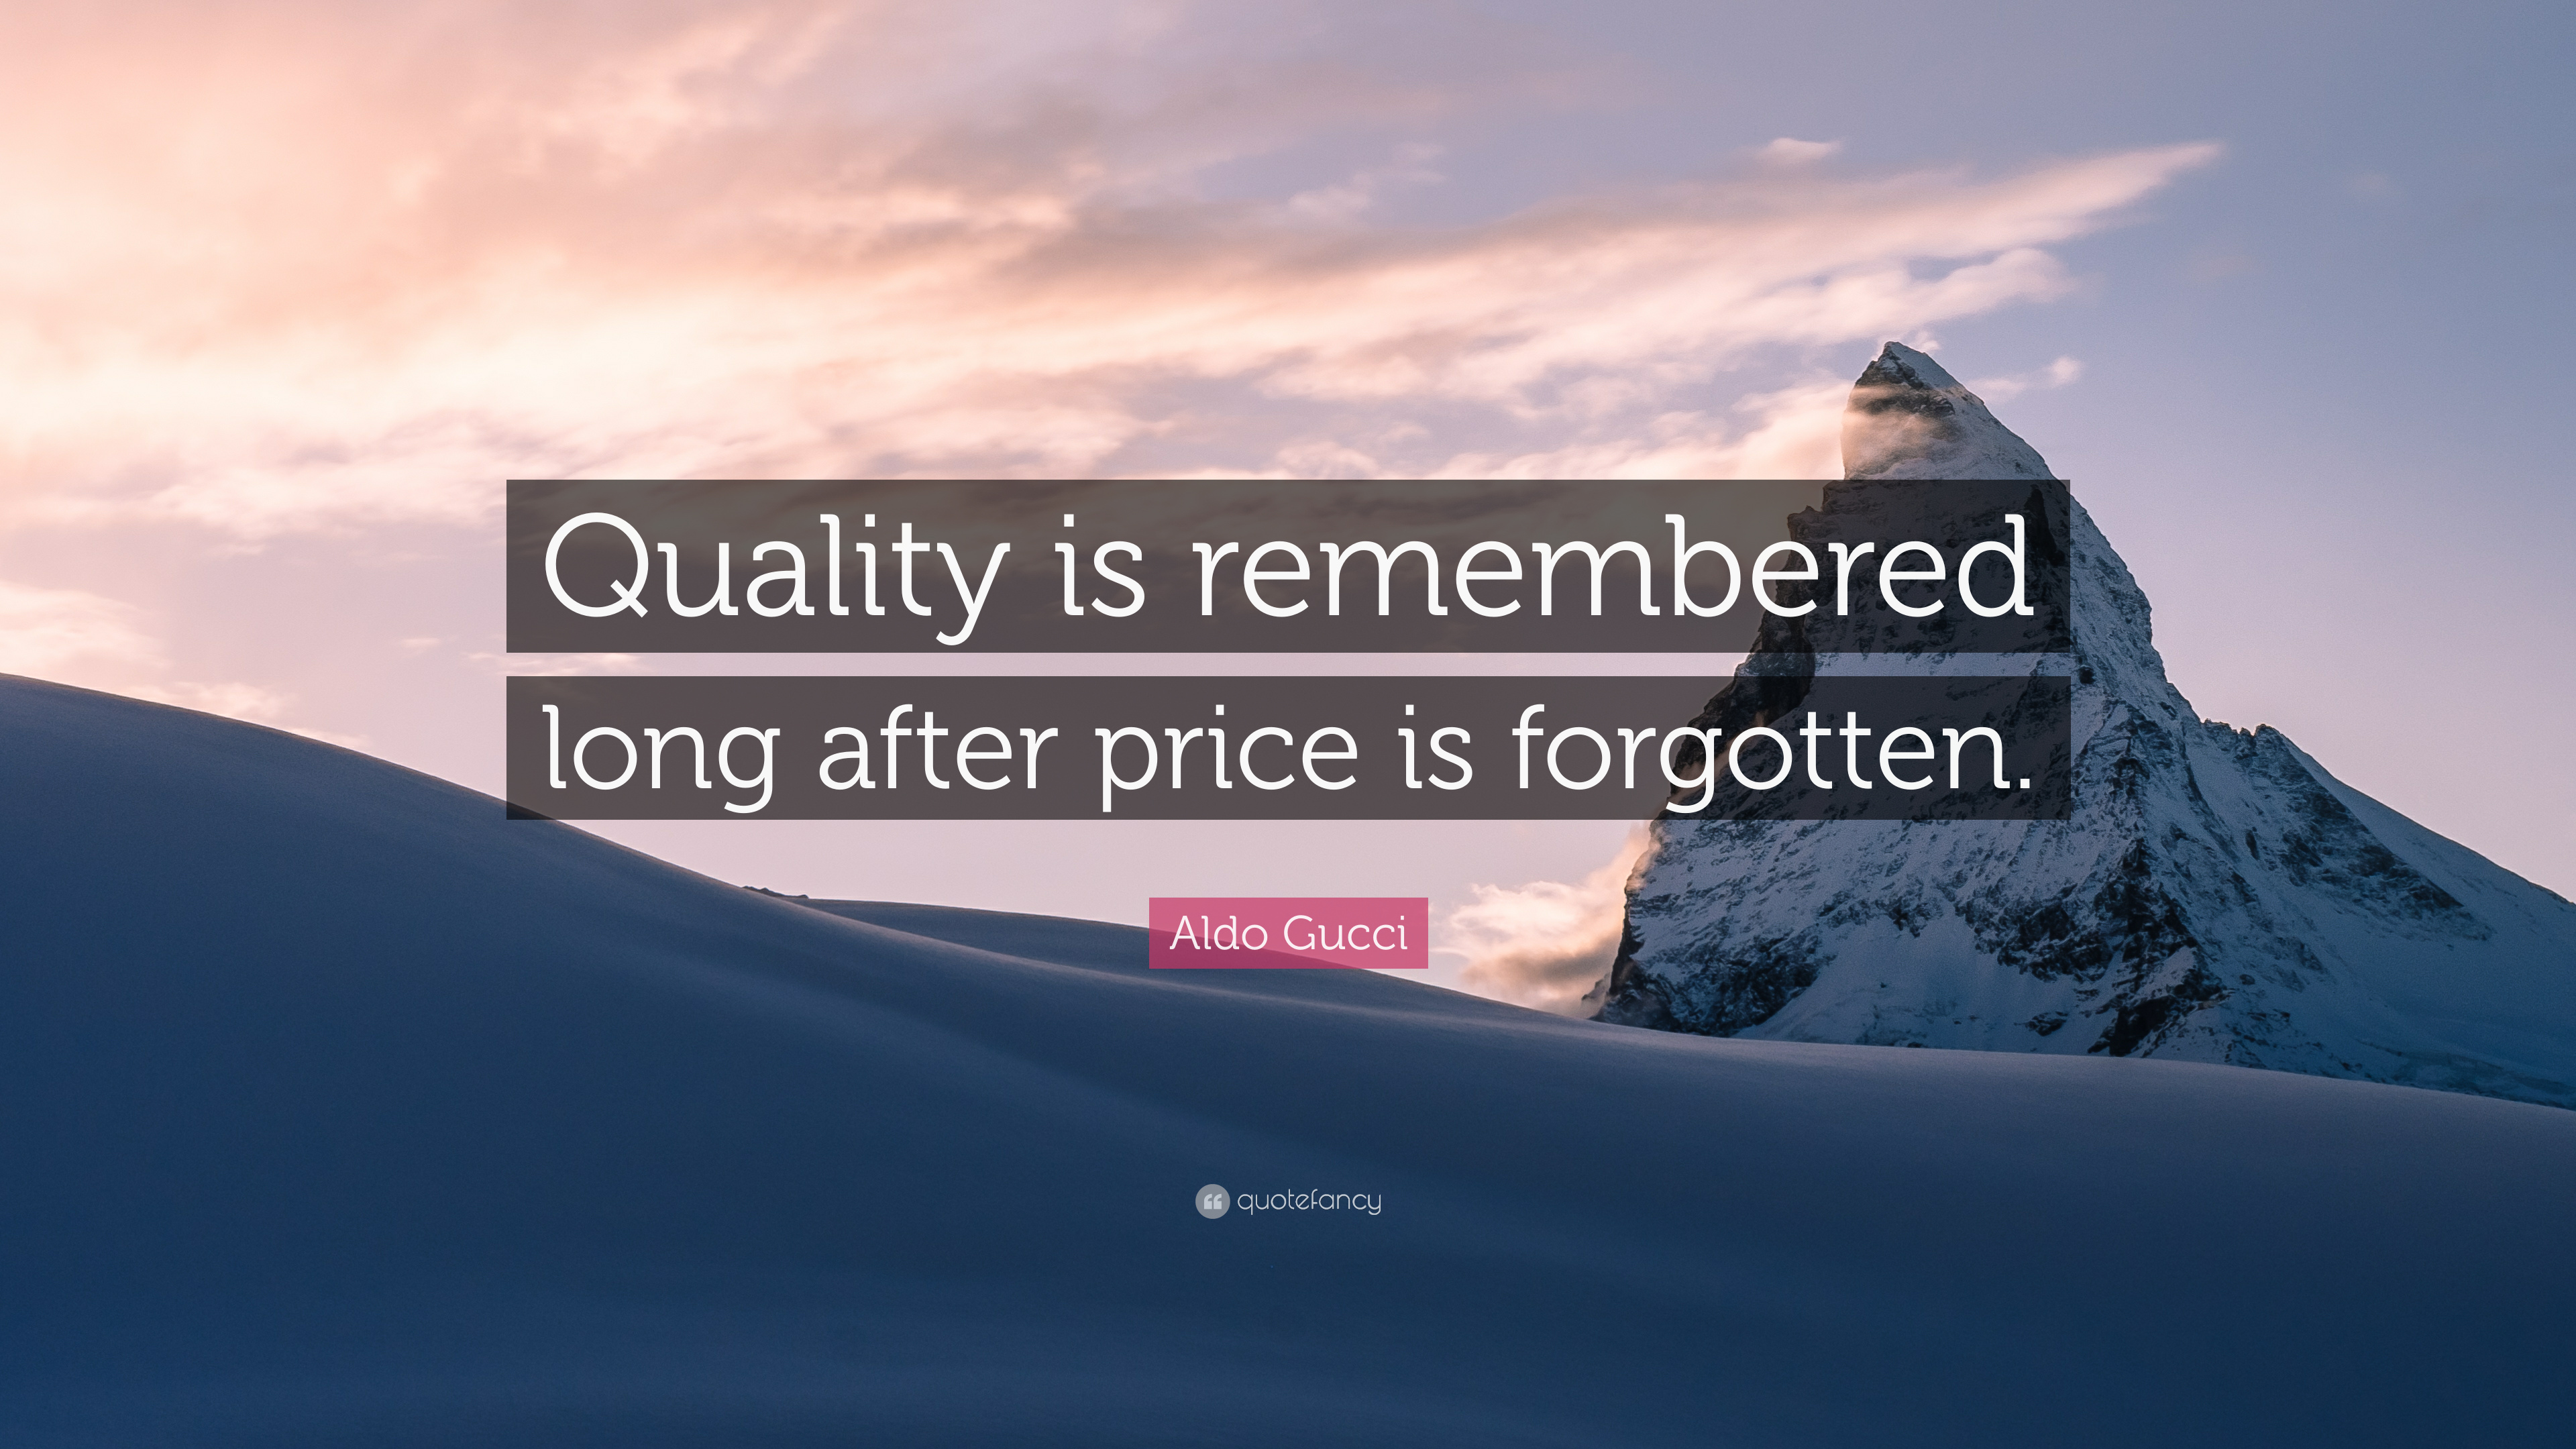 quality is normally recalled much time soon after cost is actually forgotten essay format